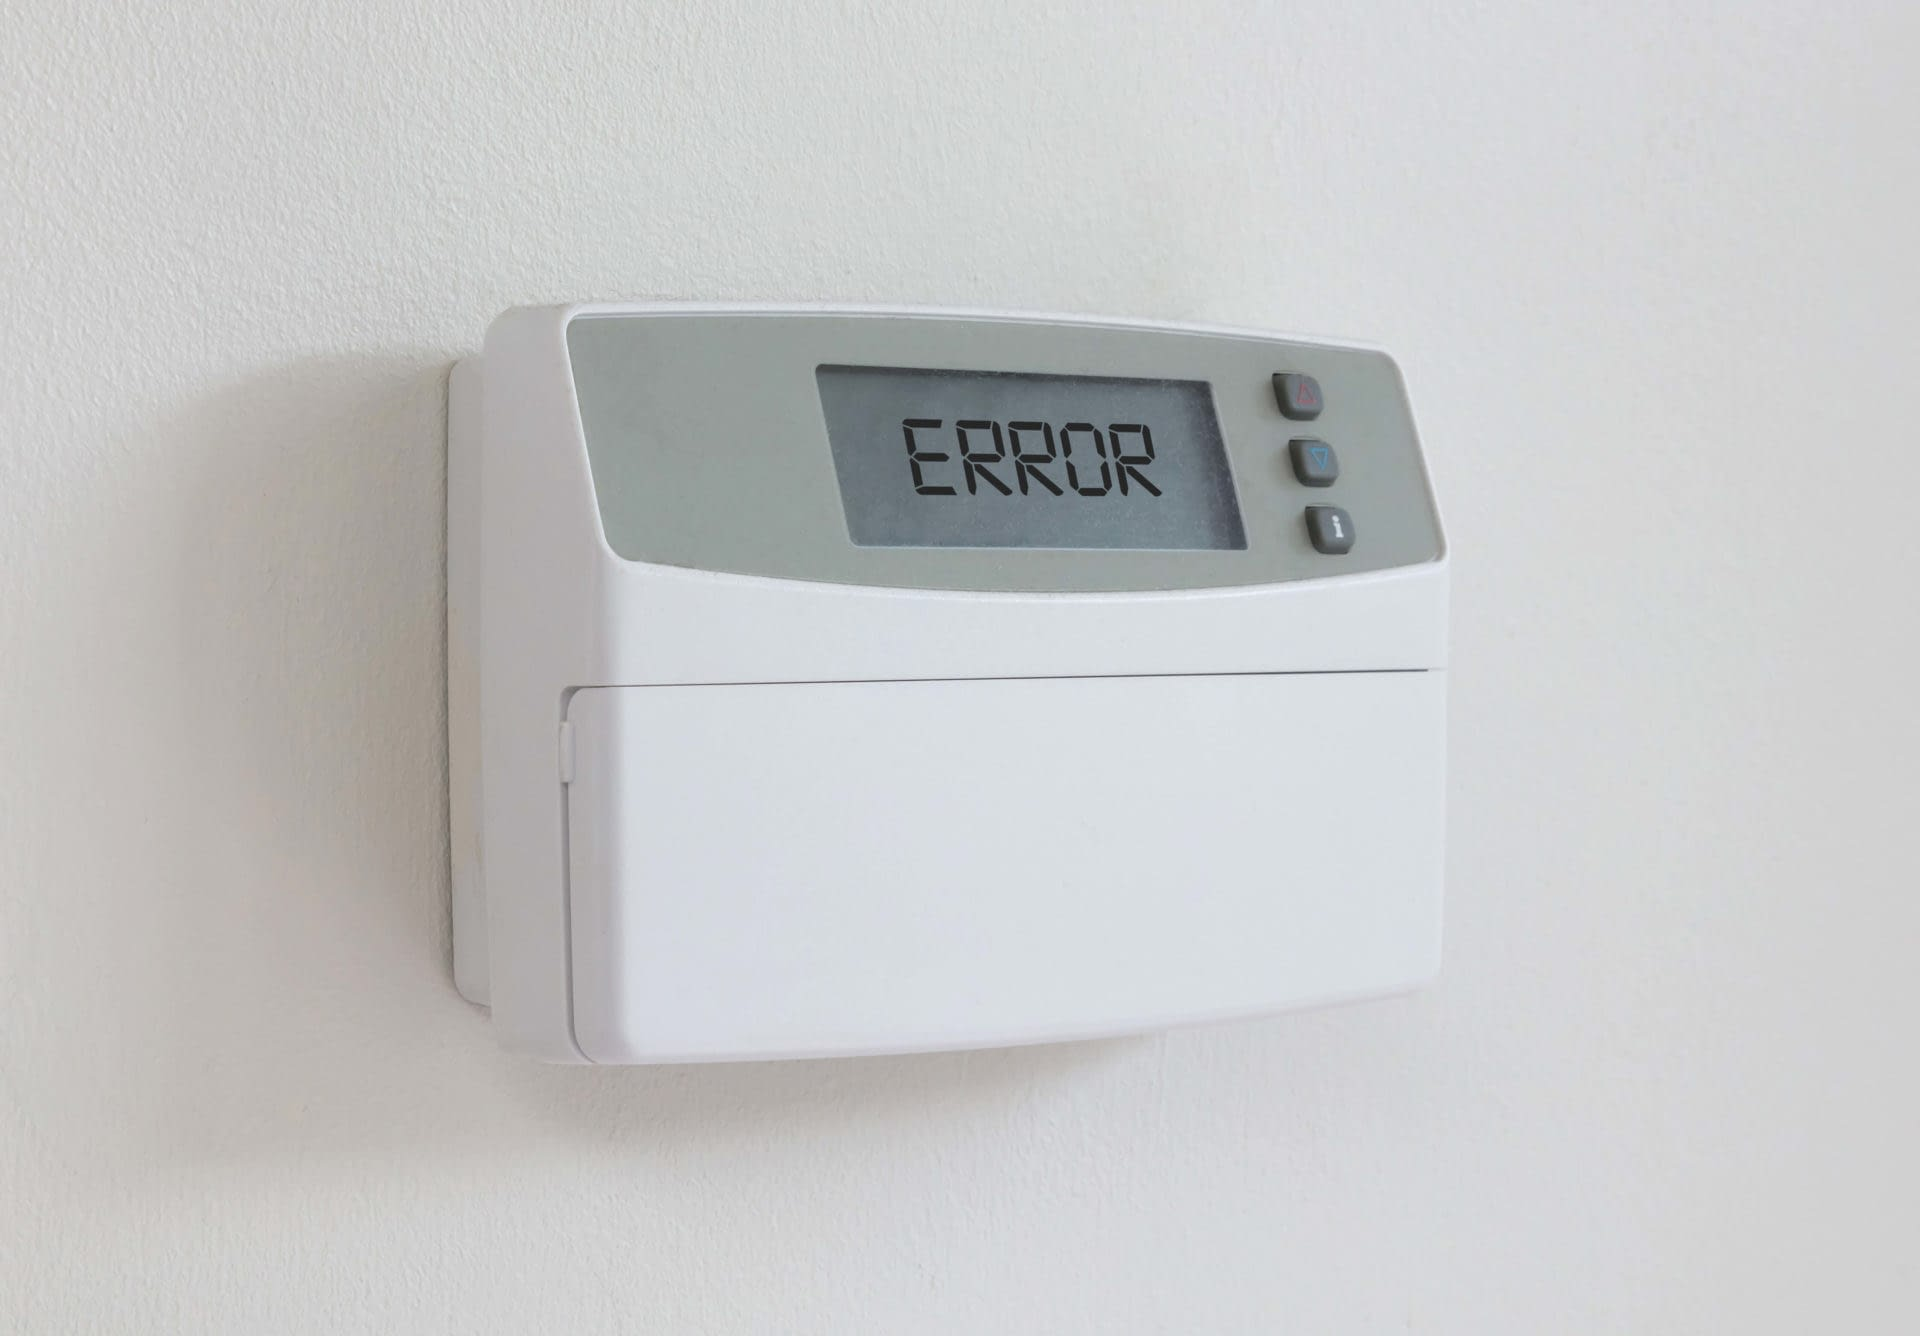 Broken Thermostat with an error message